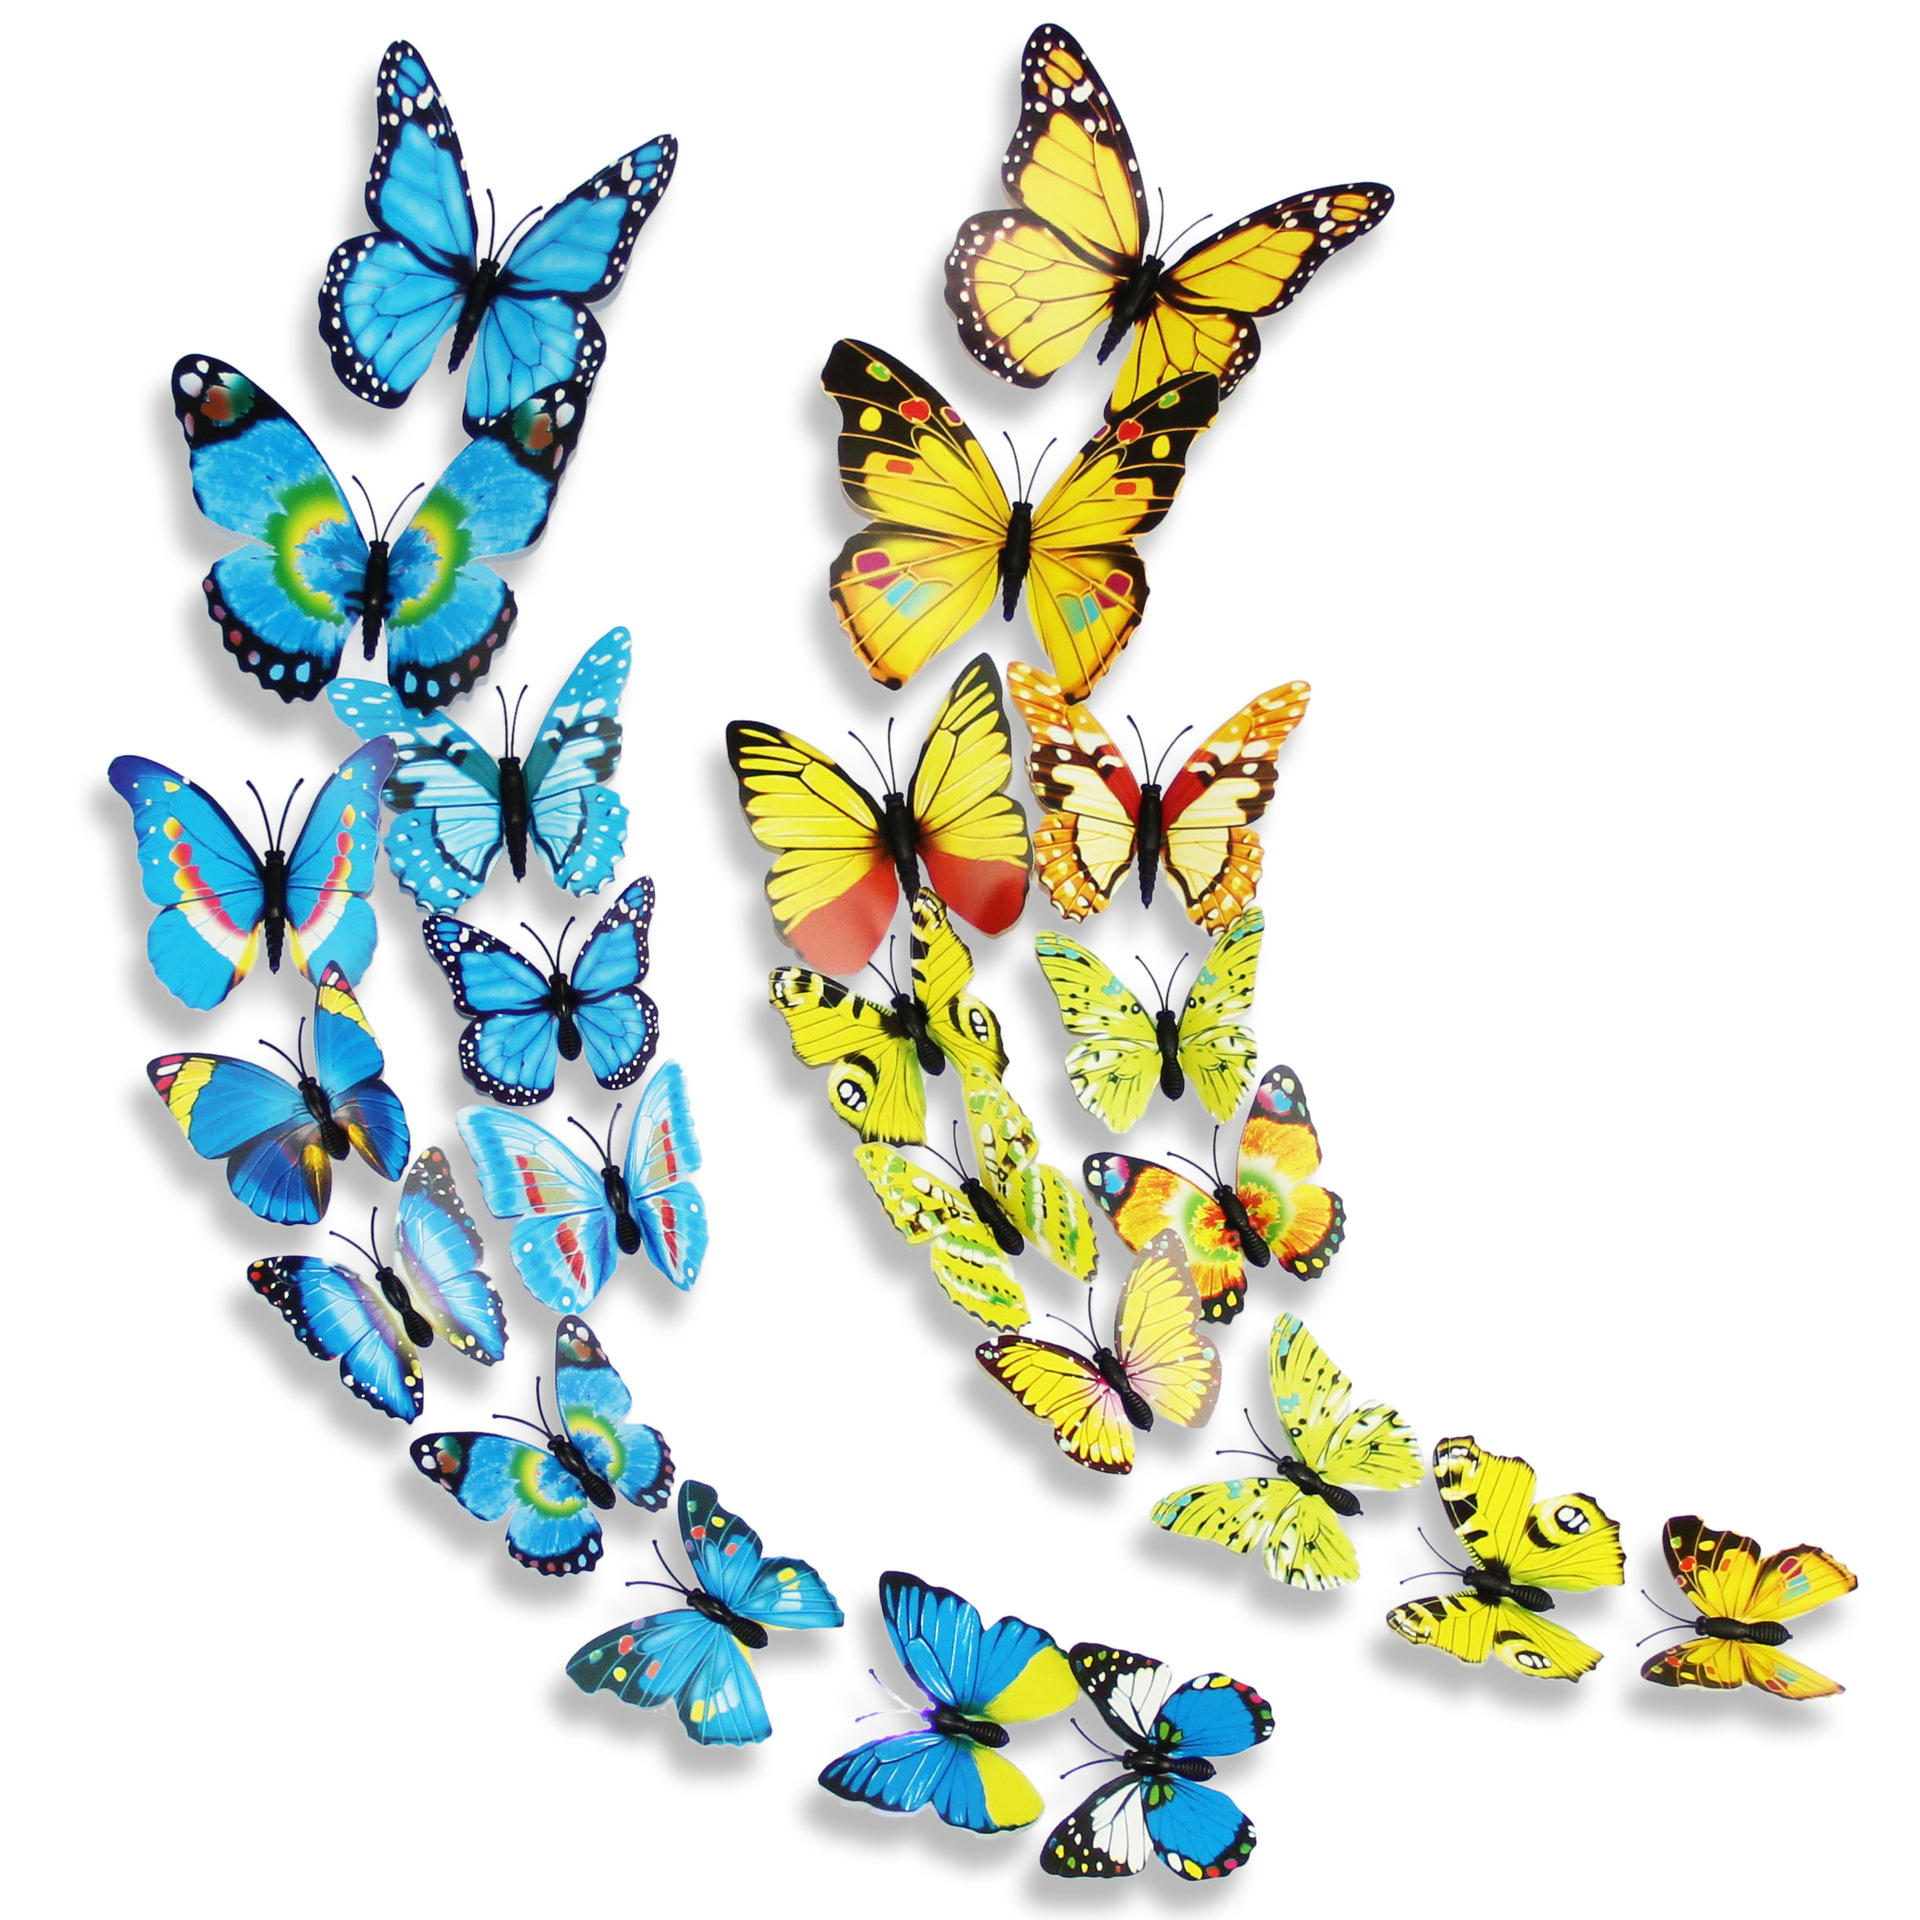 12 Pcs PVC Butterfly Double Deck 3D Wall Stickers Home Decor Adhesive Decoration COD